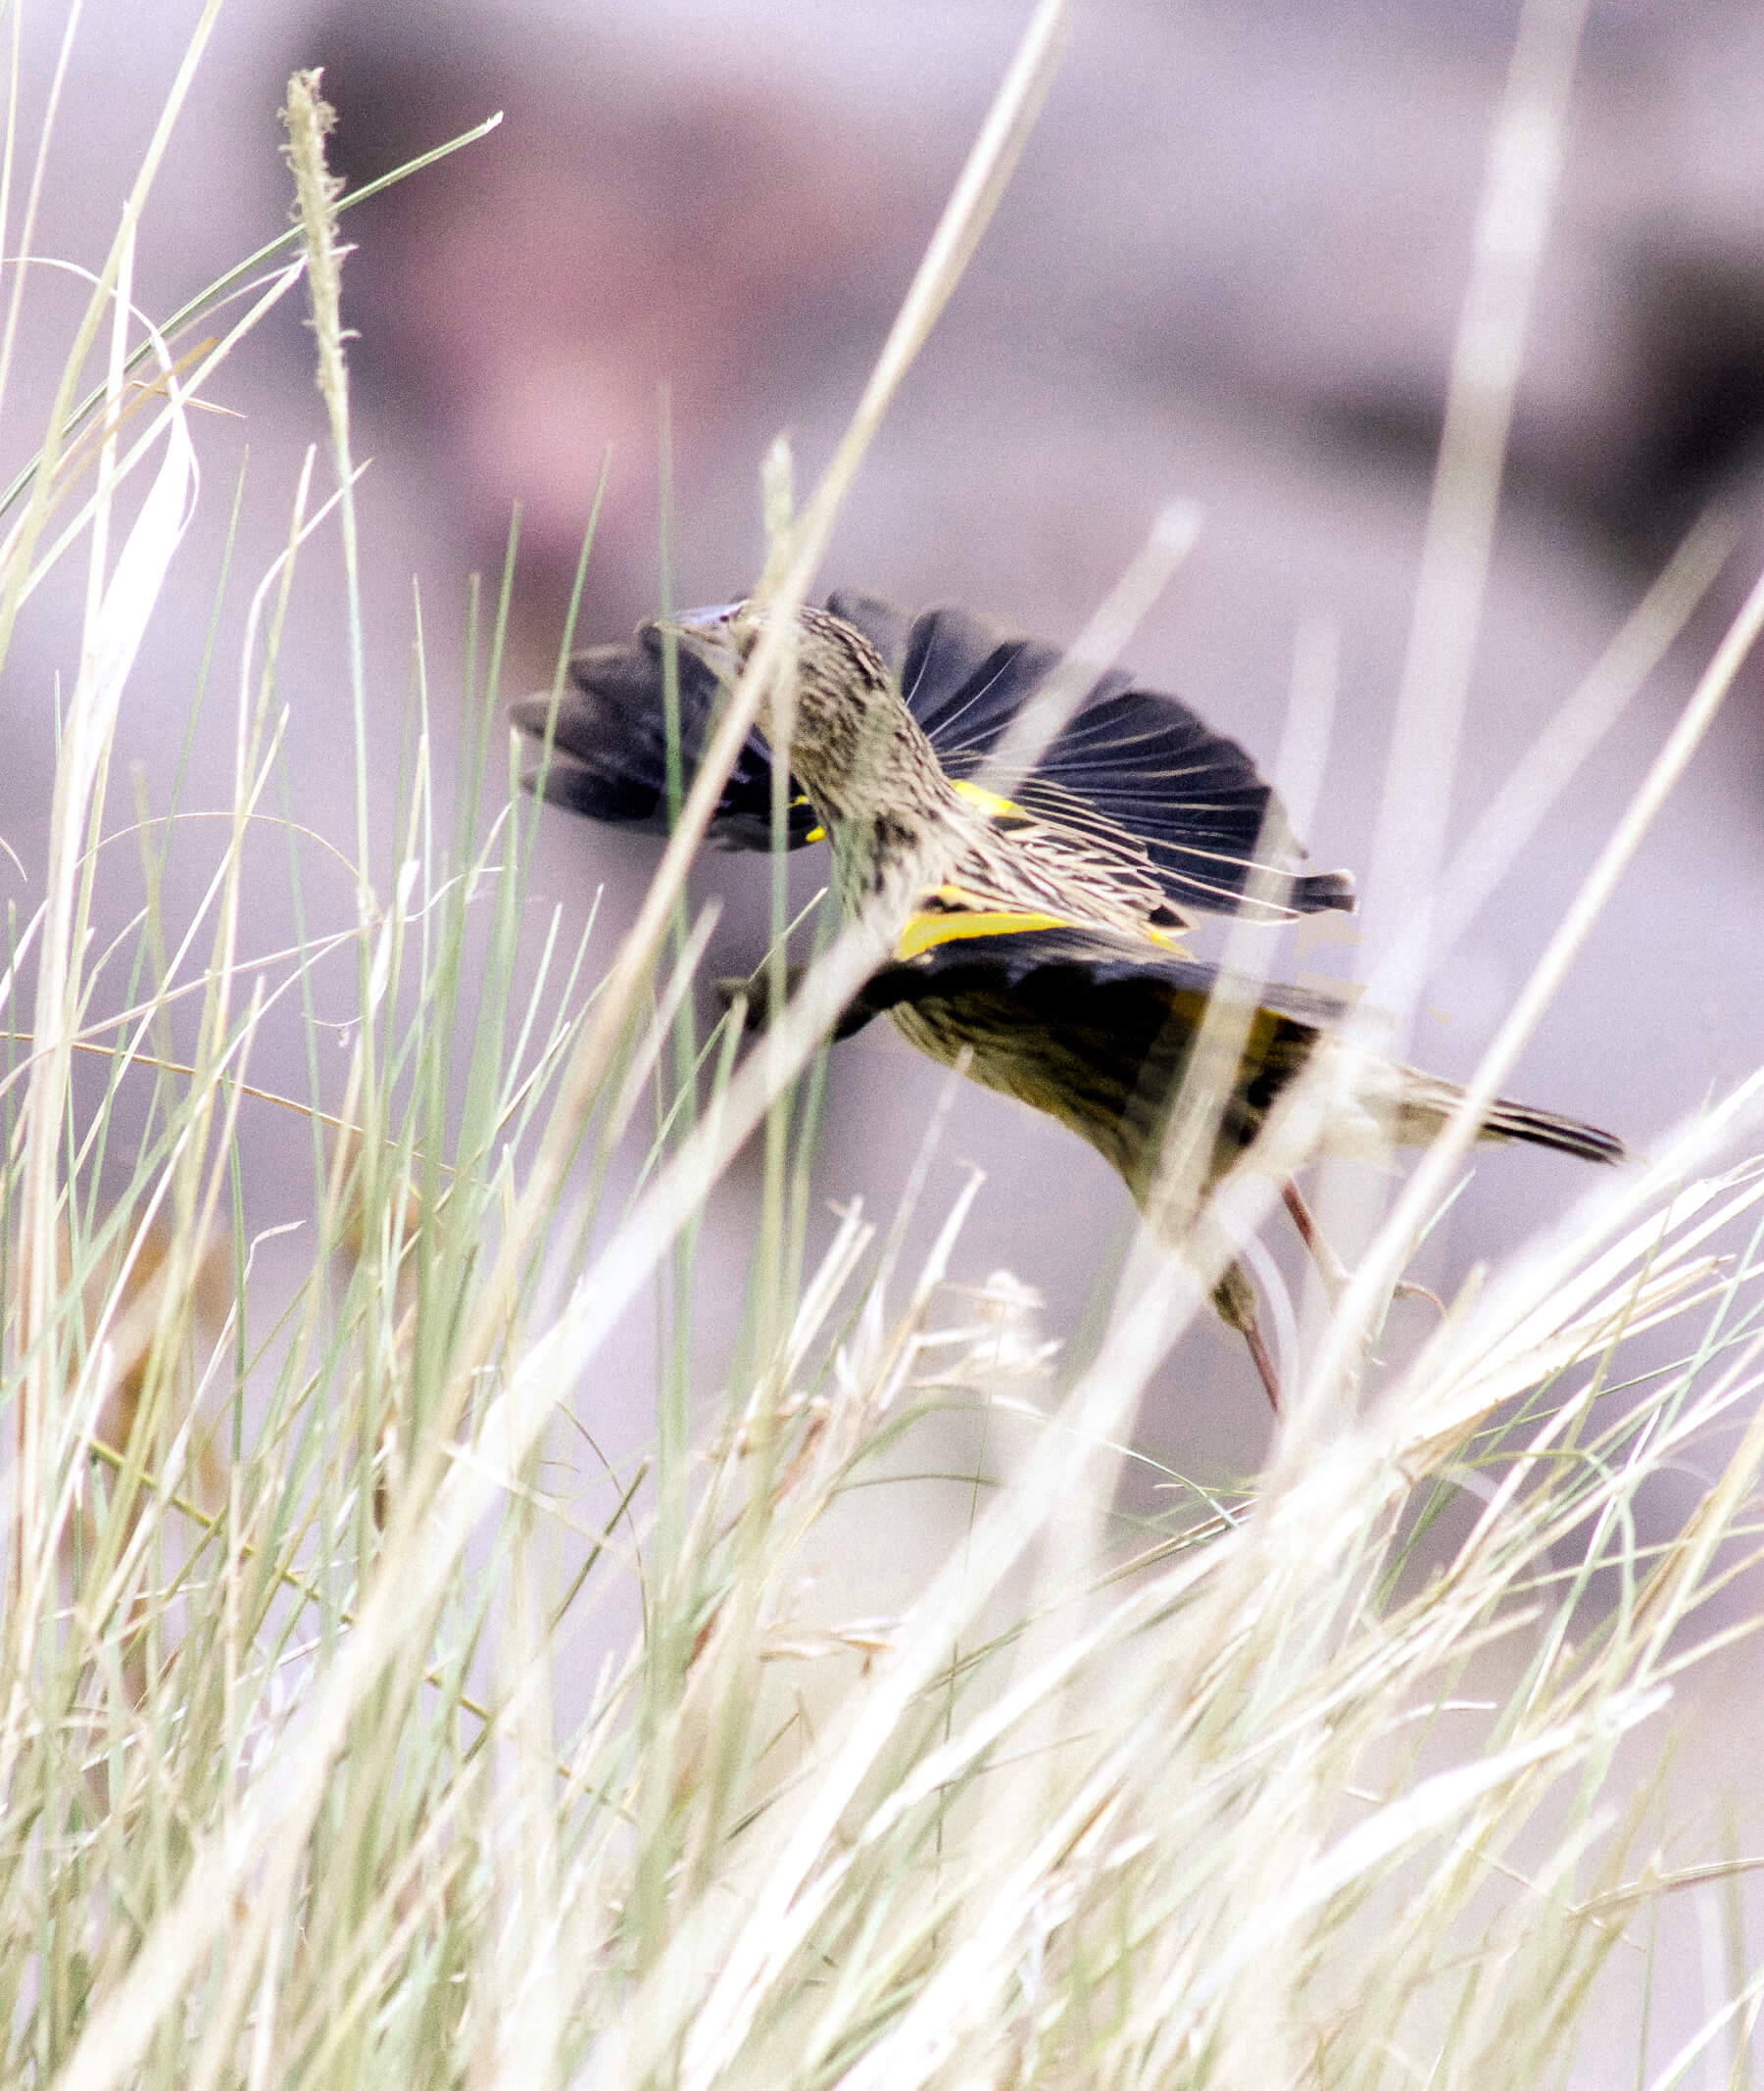 A brown swallow with bright yellow under its wings, taking flight from a reed